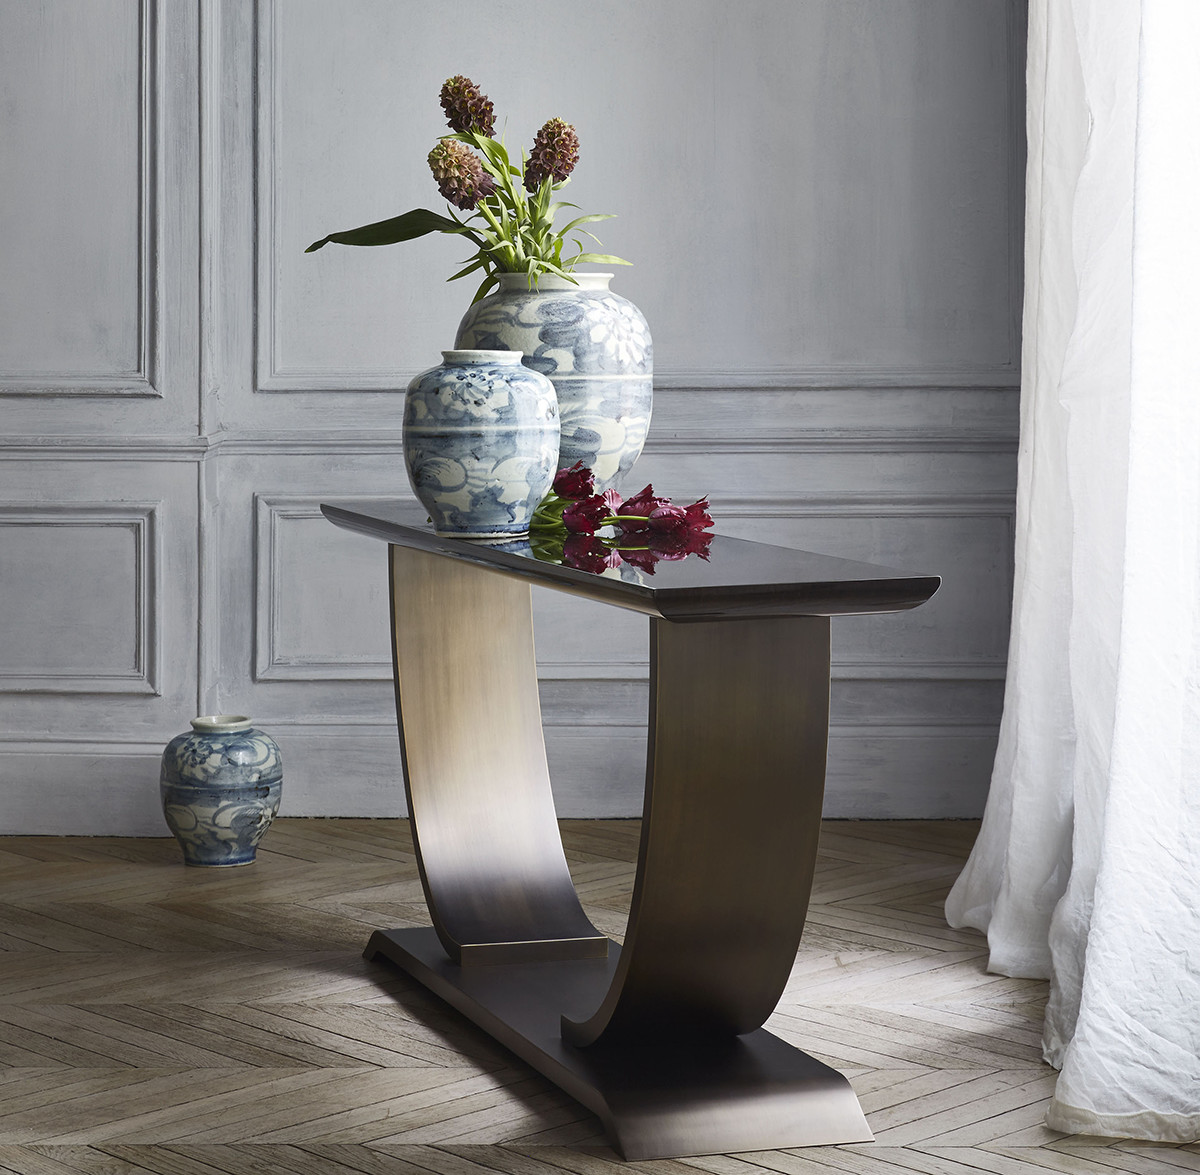 Mobilier France Hugues Chevalier Mobilier Design France Apr Digital